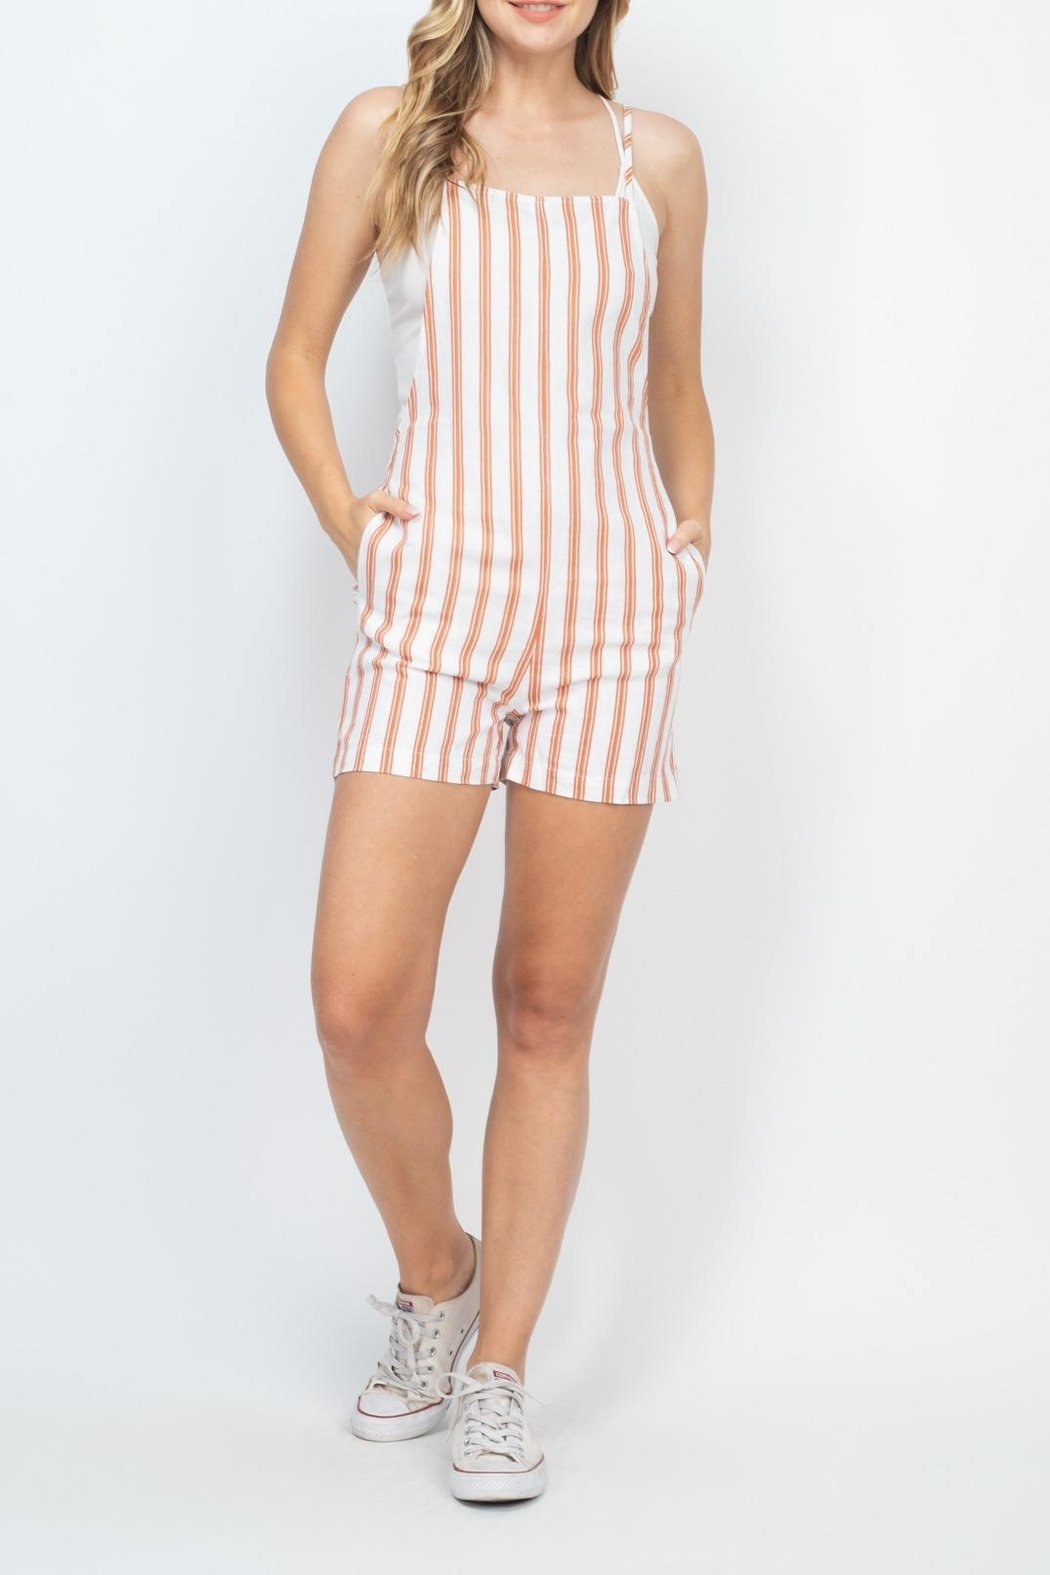 Riah Fashion Rust-Ivory-Stripes-Romper - Side Cropped Image